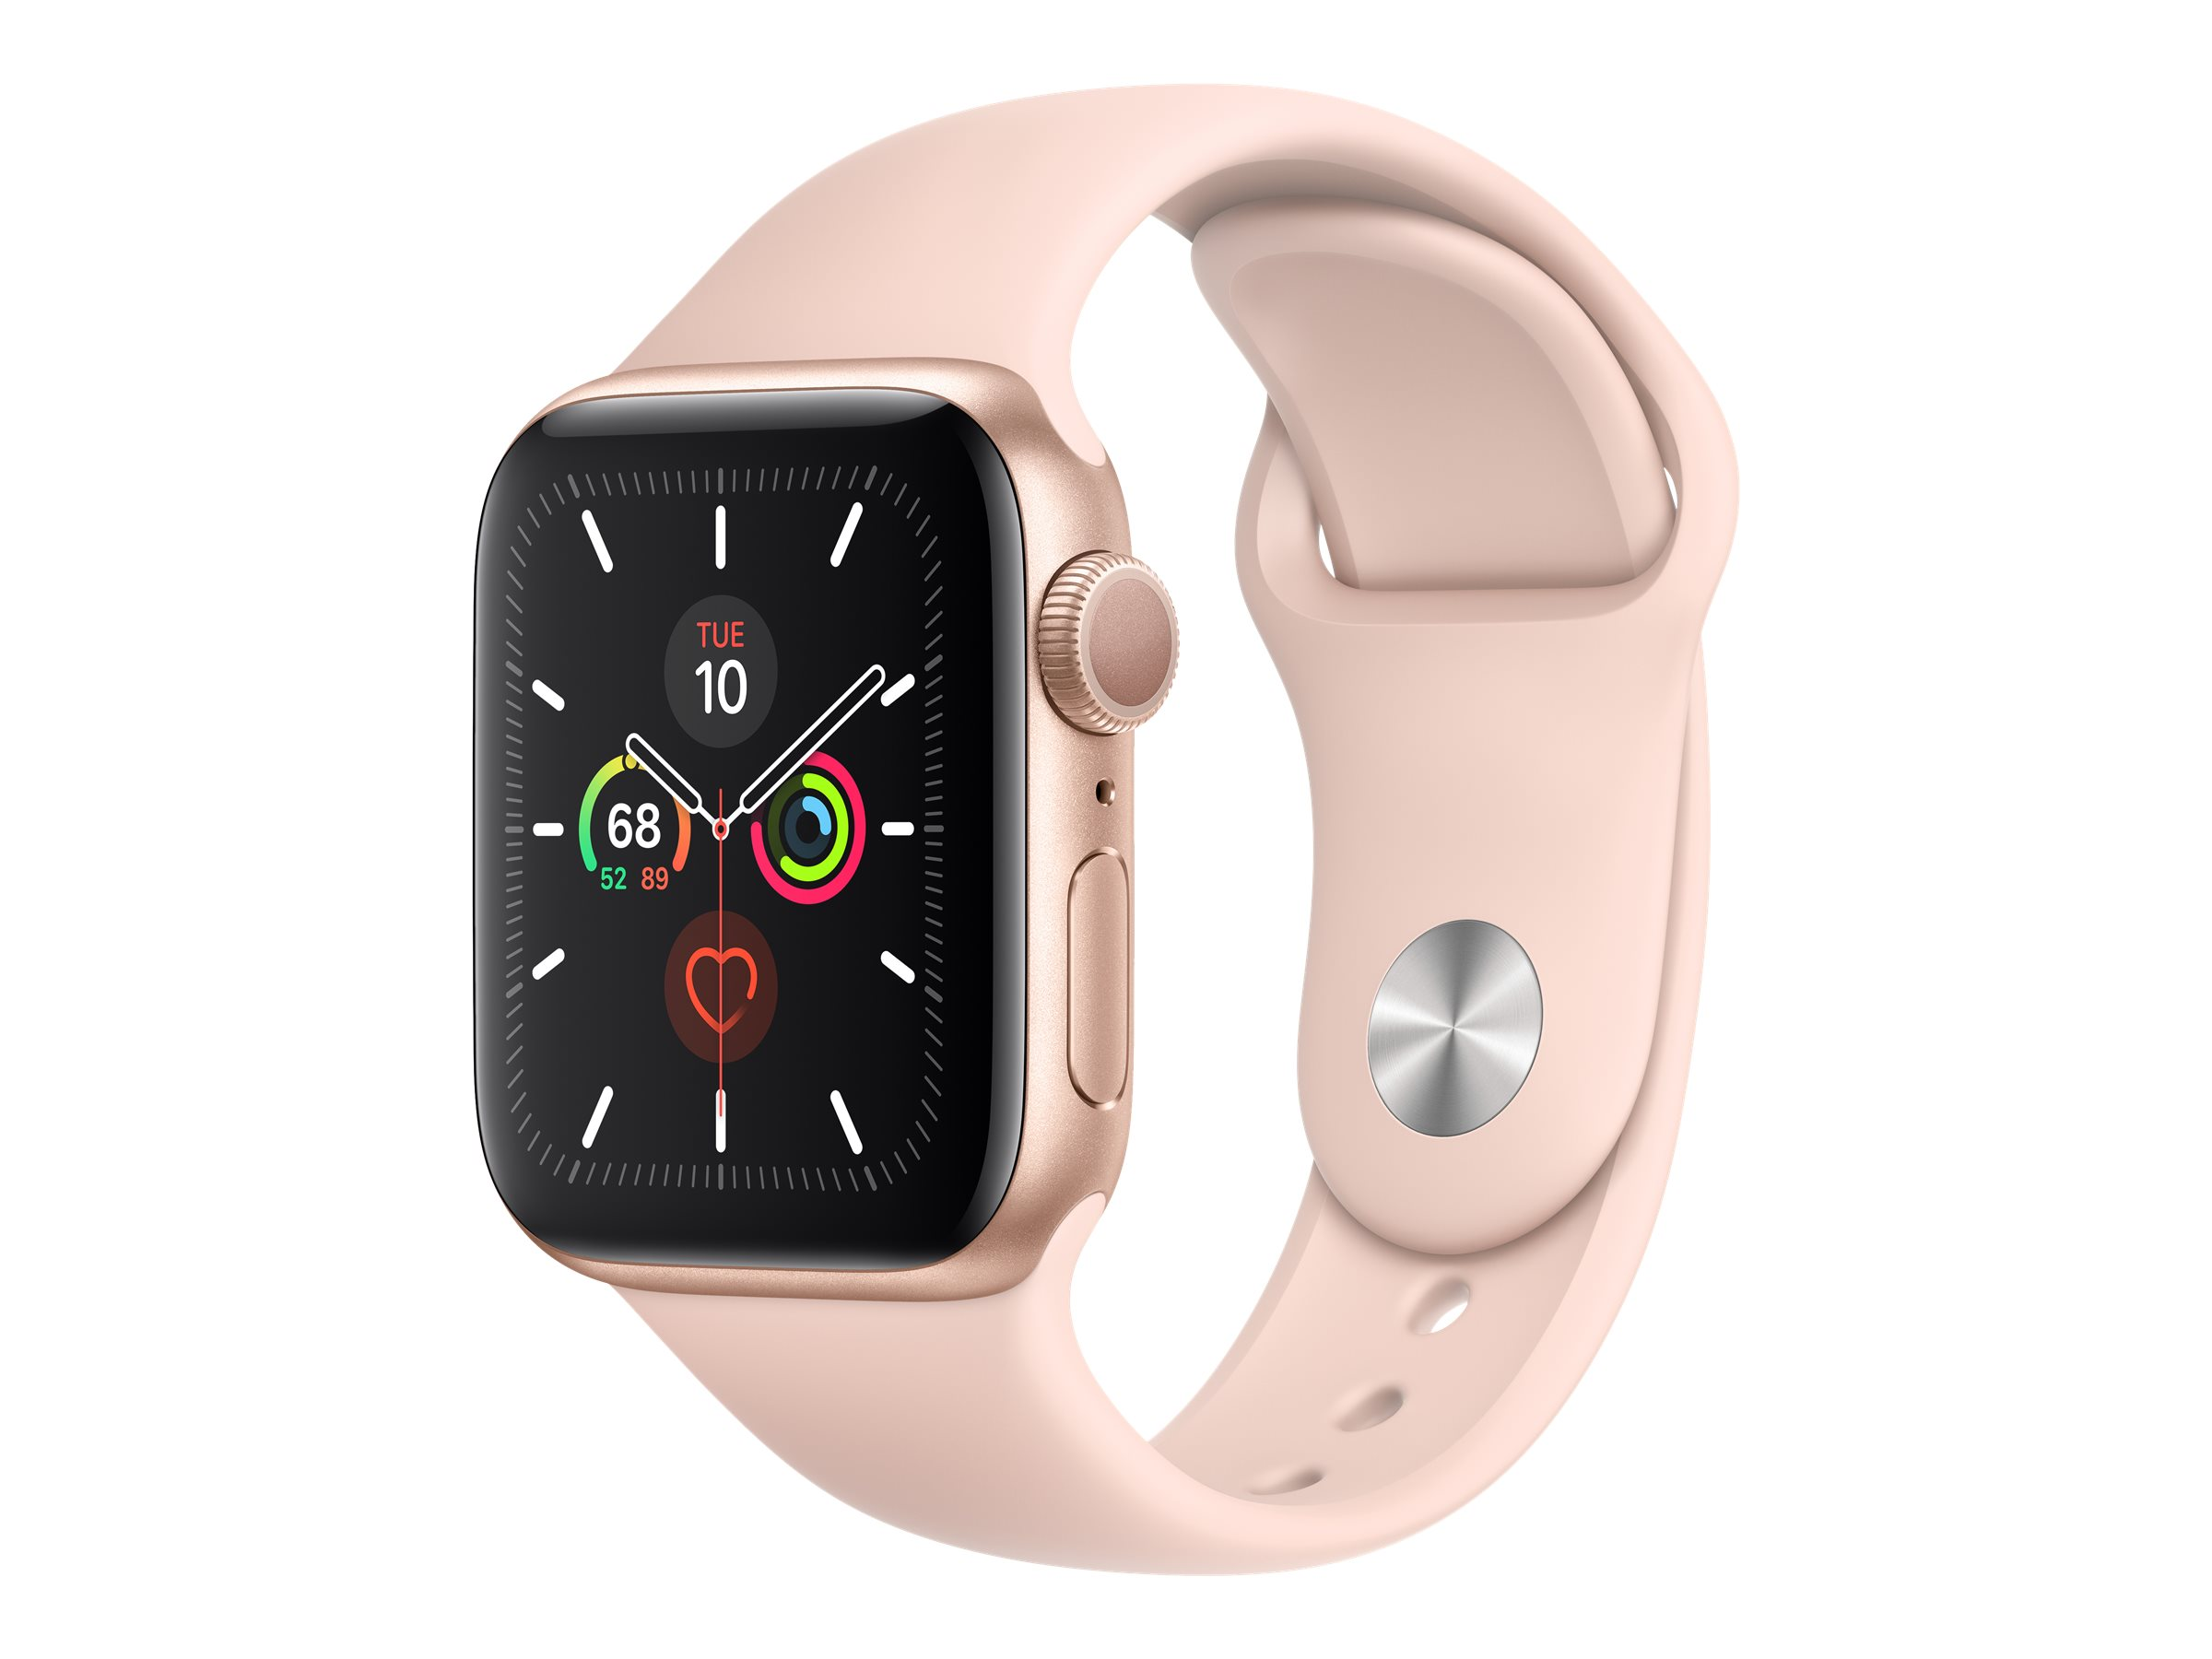 Apple Watch Series 5 (GPS) - gold aluminum - smart watch with sport band - pink sand - 32 GB